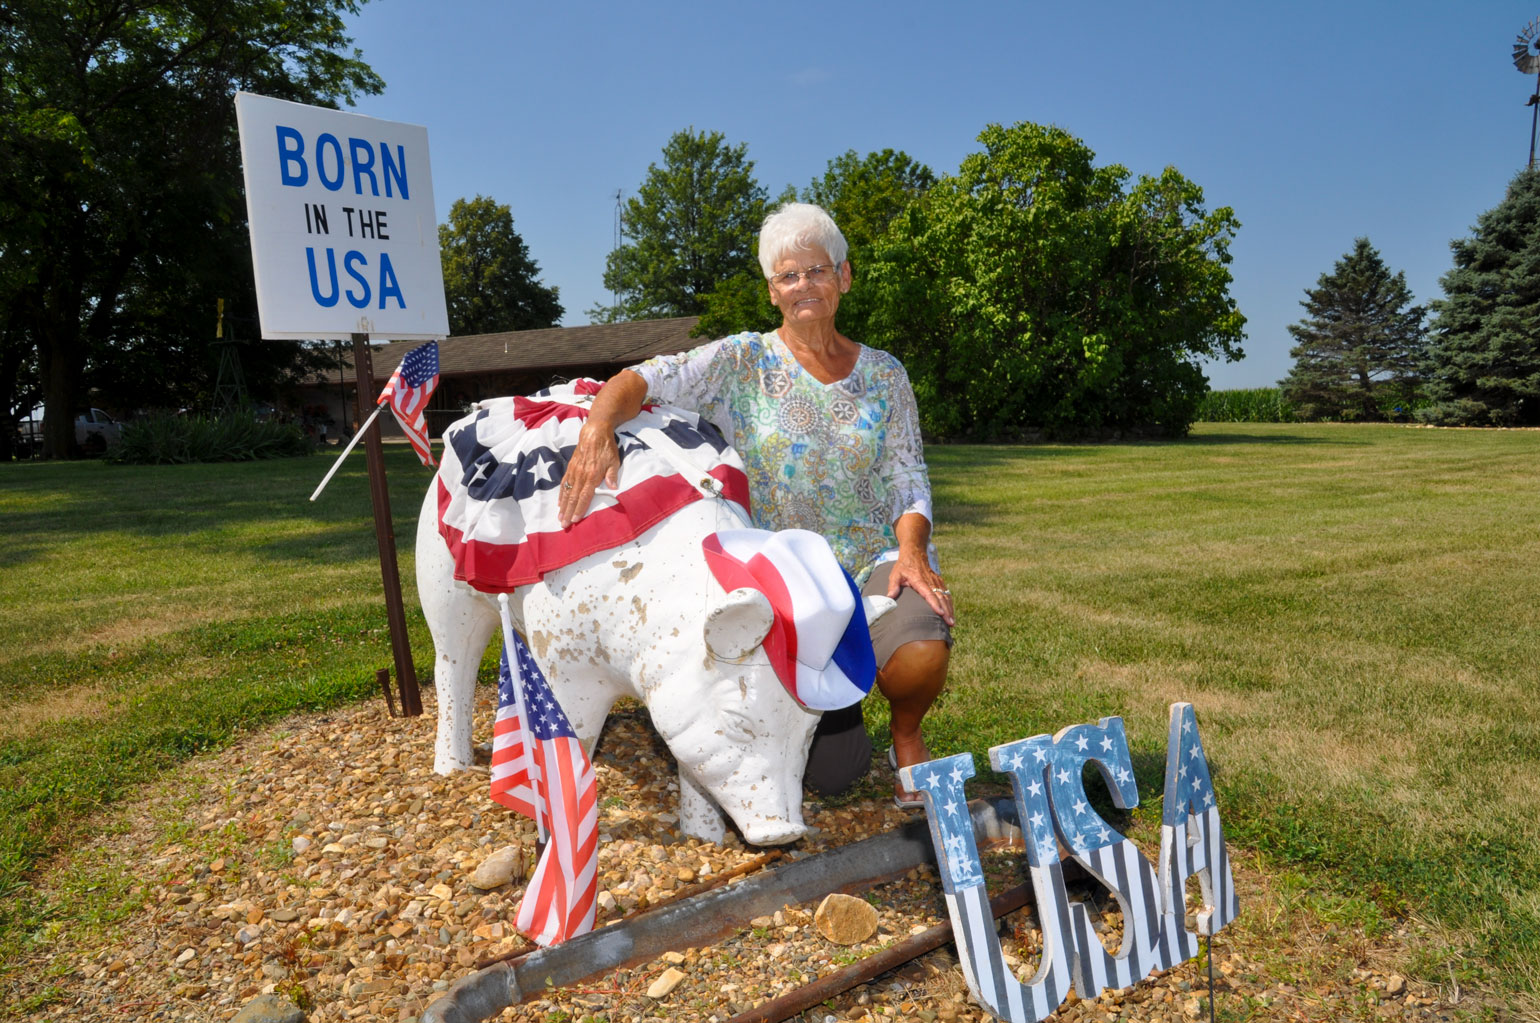 Sandy Nelson kneels beside s a concrete pig in her front yard decorated for the Fourth of July